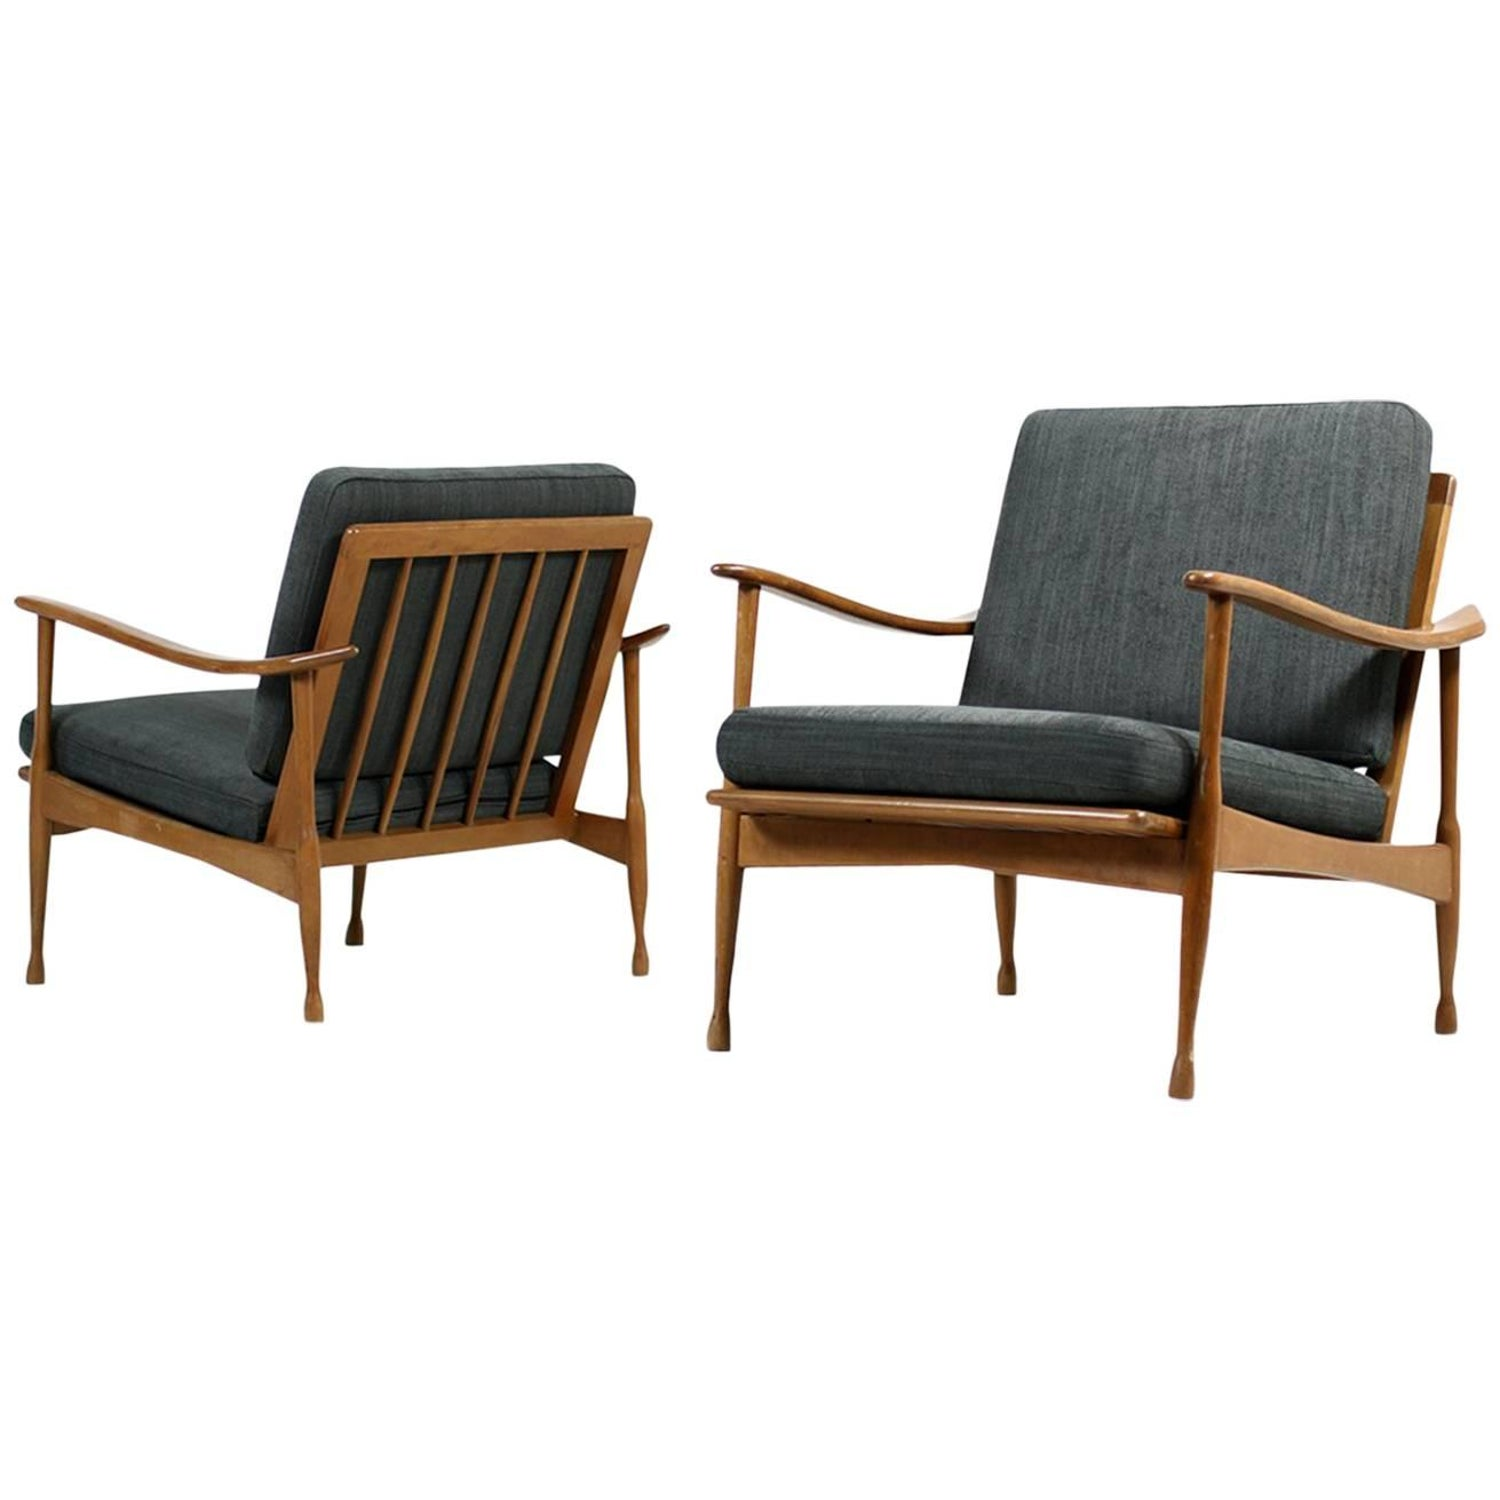 Pair of 1950s italian organic easy chairs beechwood mid century new upholstery for sale at 1stdibs